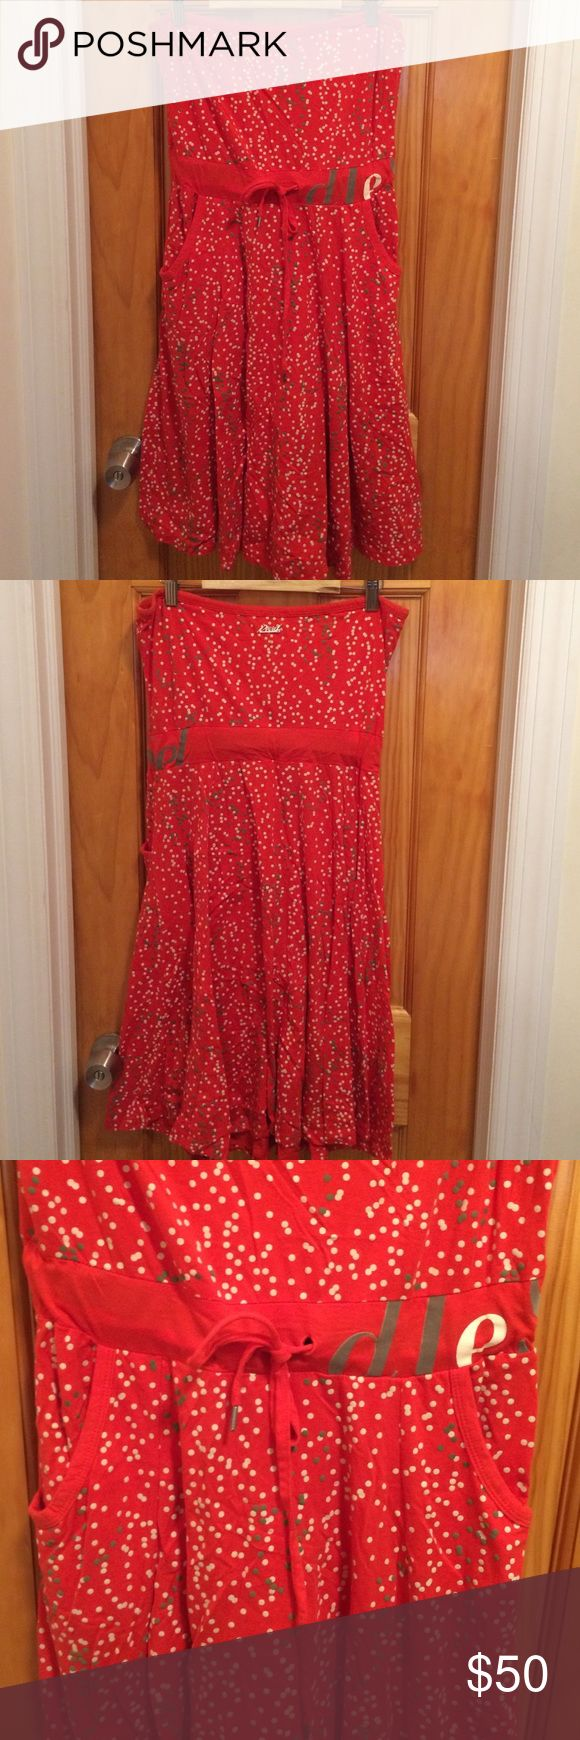 Diesel dress Strapless Diesel dress. Front pockets and ties waste. Beautiful flirty dress in polka dot orange, size small, hits right below knee Diesel Dresses Midi